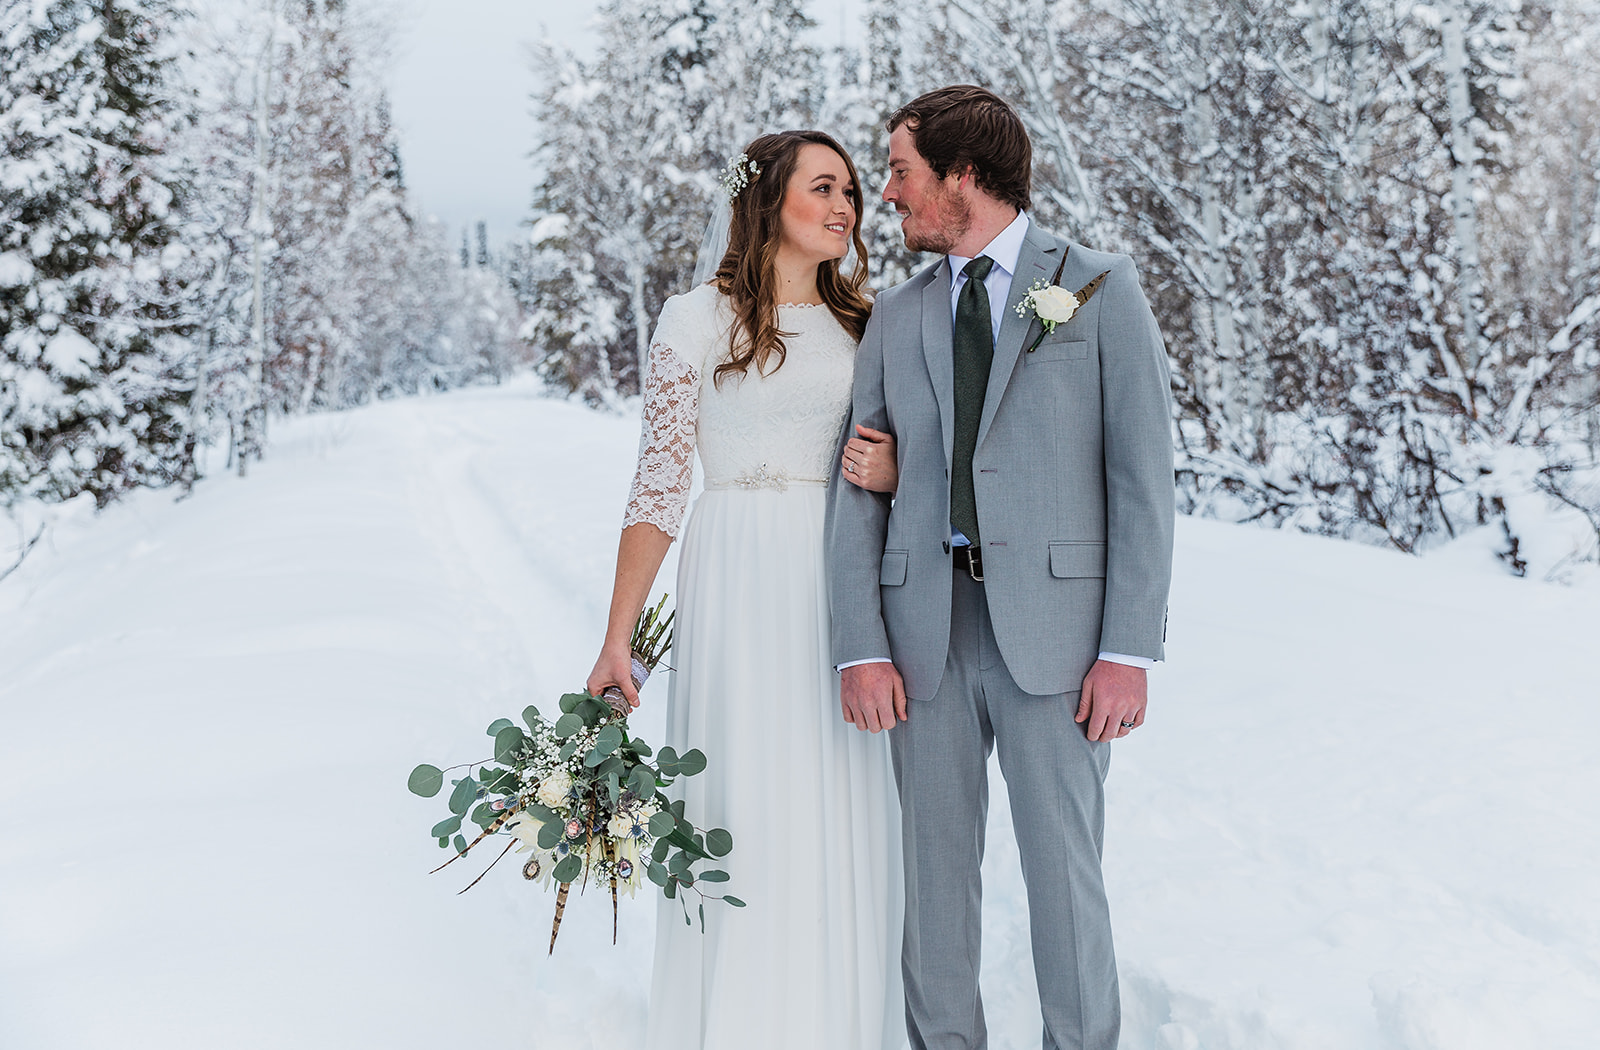 loving rustic country couple unique pheasant touches beautiful wedding dress belt rosy cheeked couple christmas season winter wedding holding grooms arm pose inspiration standing in the snow couple staring into each others eyes love is in the air #winterwedding #formals #tony'sgrove #cachevalley #snowcoveredtrees #bellaalderphotography #professionalphotographer #winterwonderland #couplegoals #weddingattire